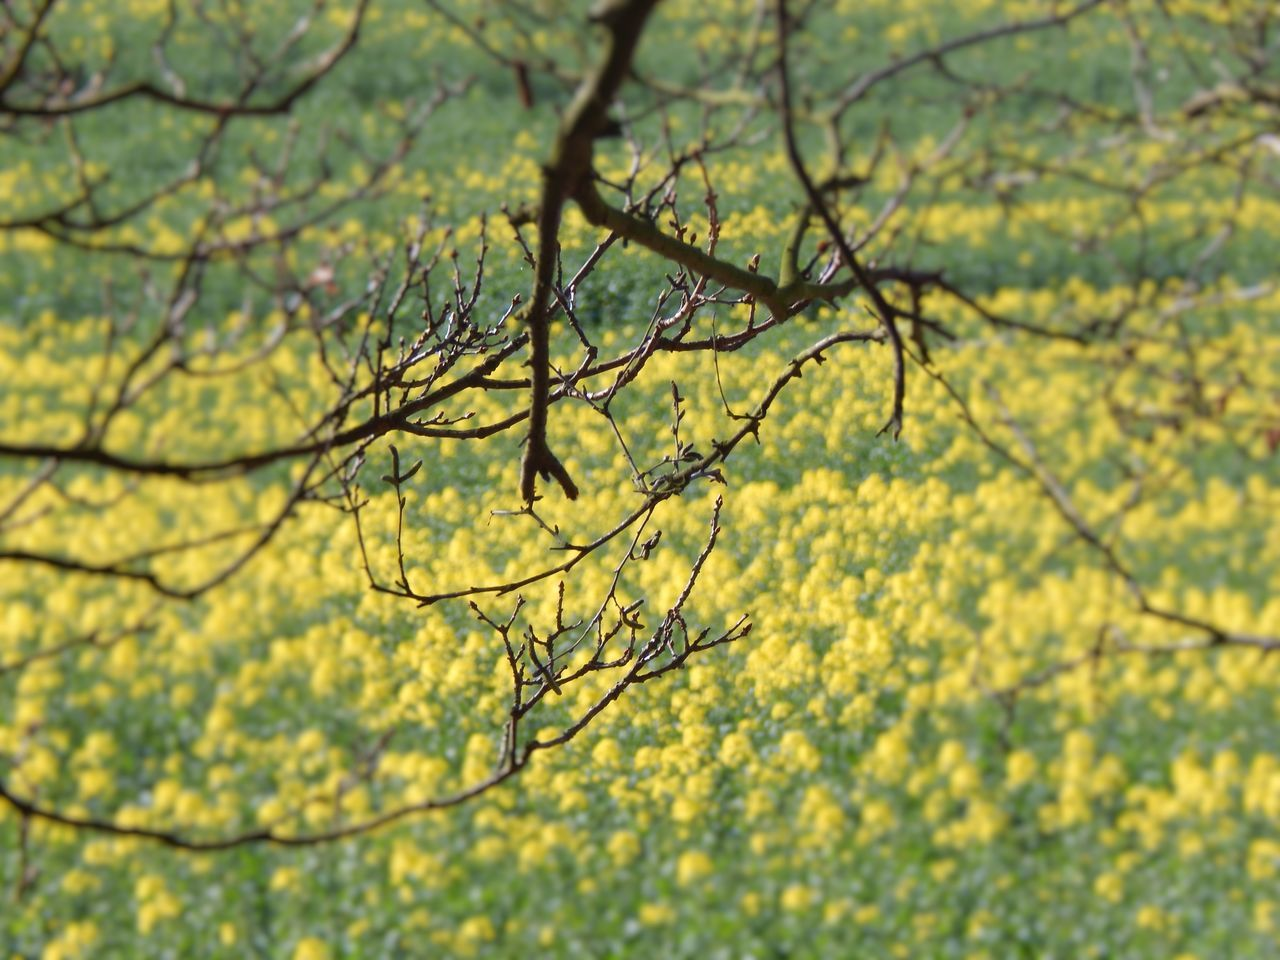 Beauty In Nature Branch Close-up Day Growth Nature No People Outdoors Sky Sprigs Spring Into Spring Tranquility Tree Yellow Flower